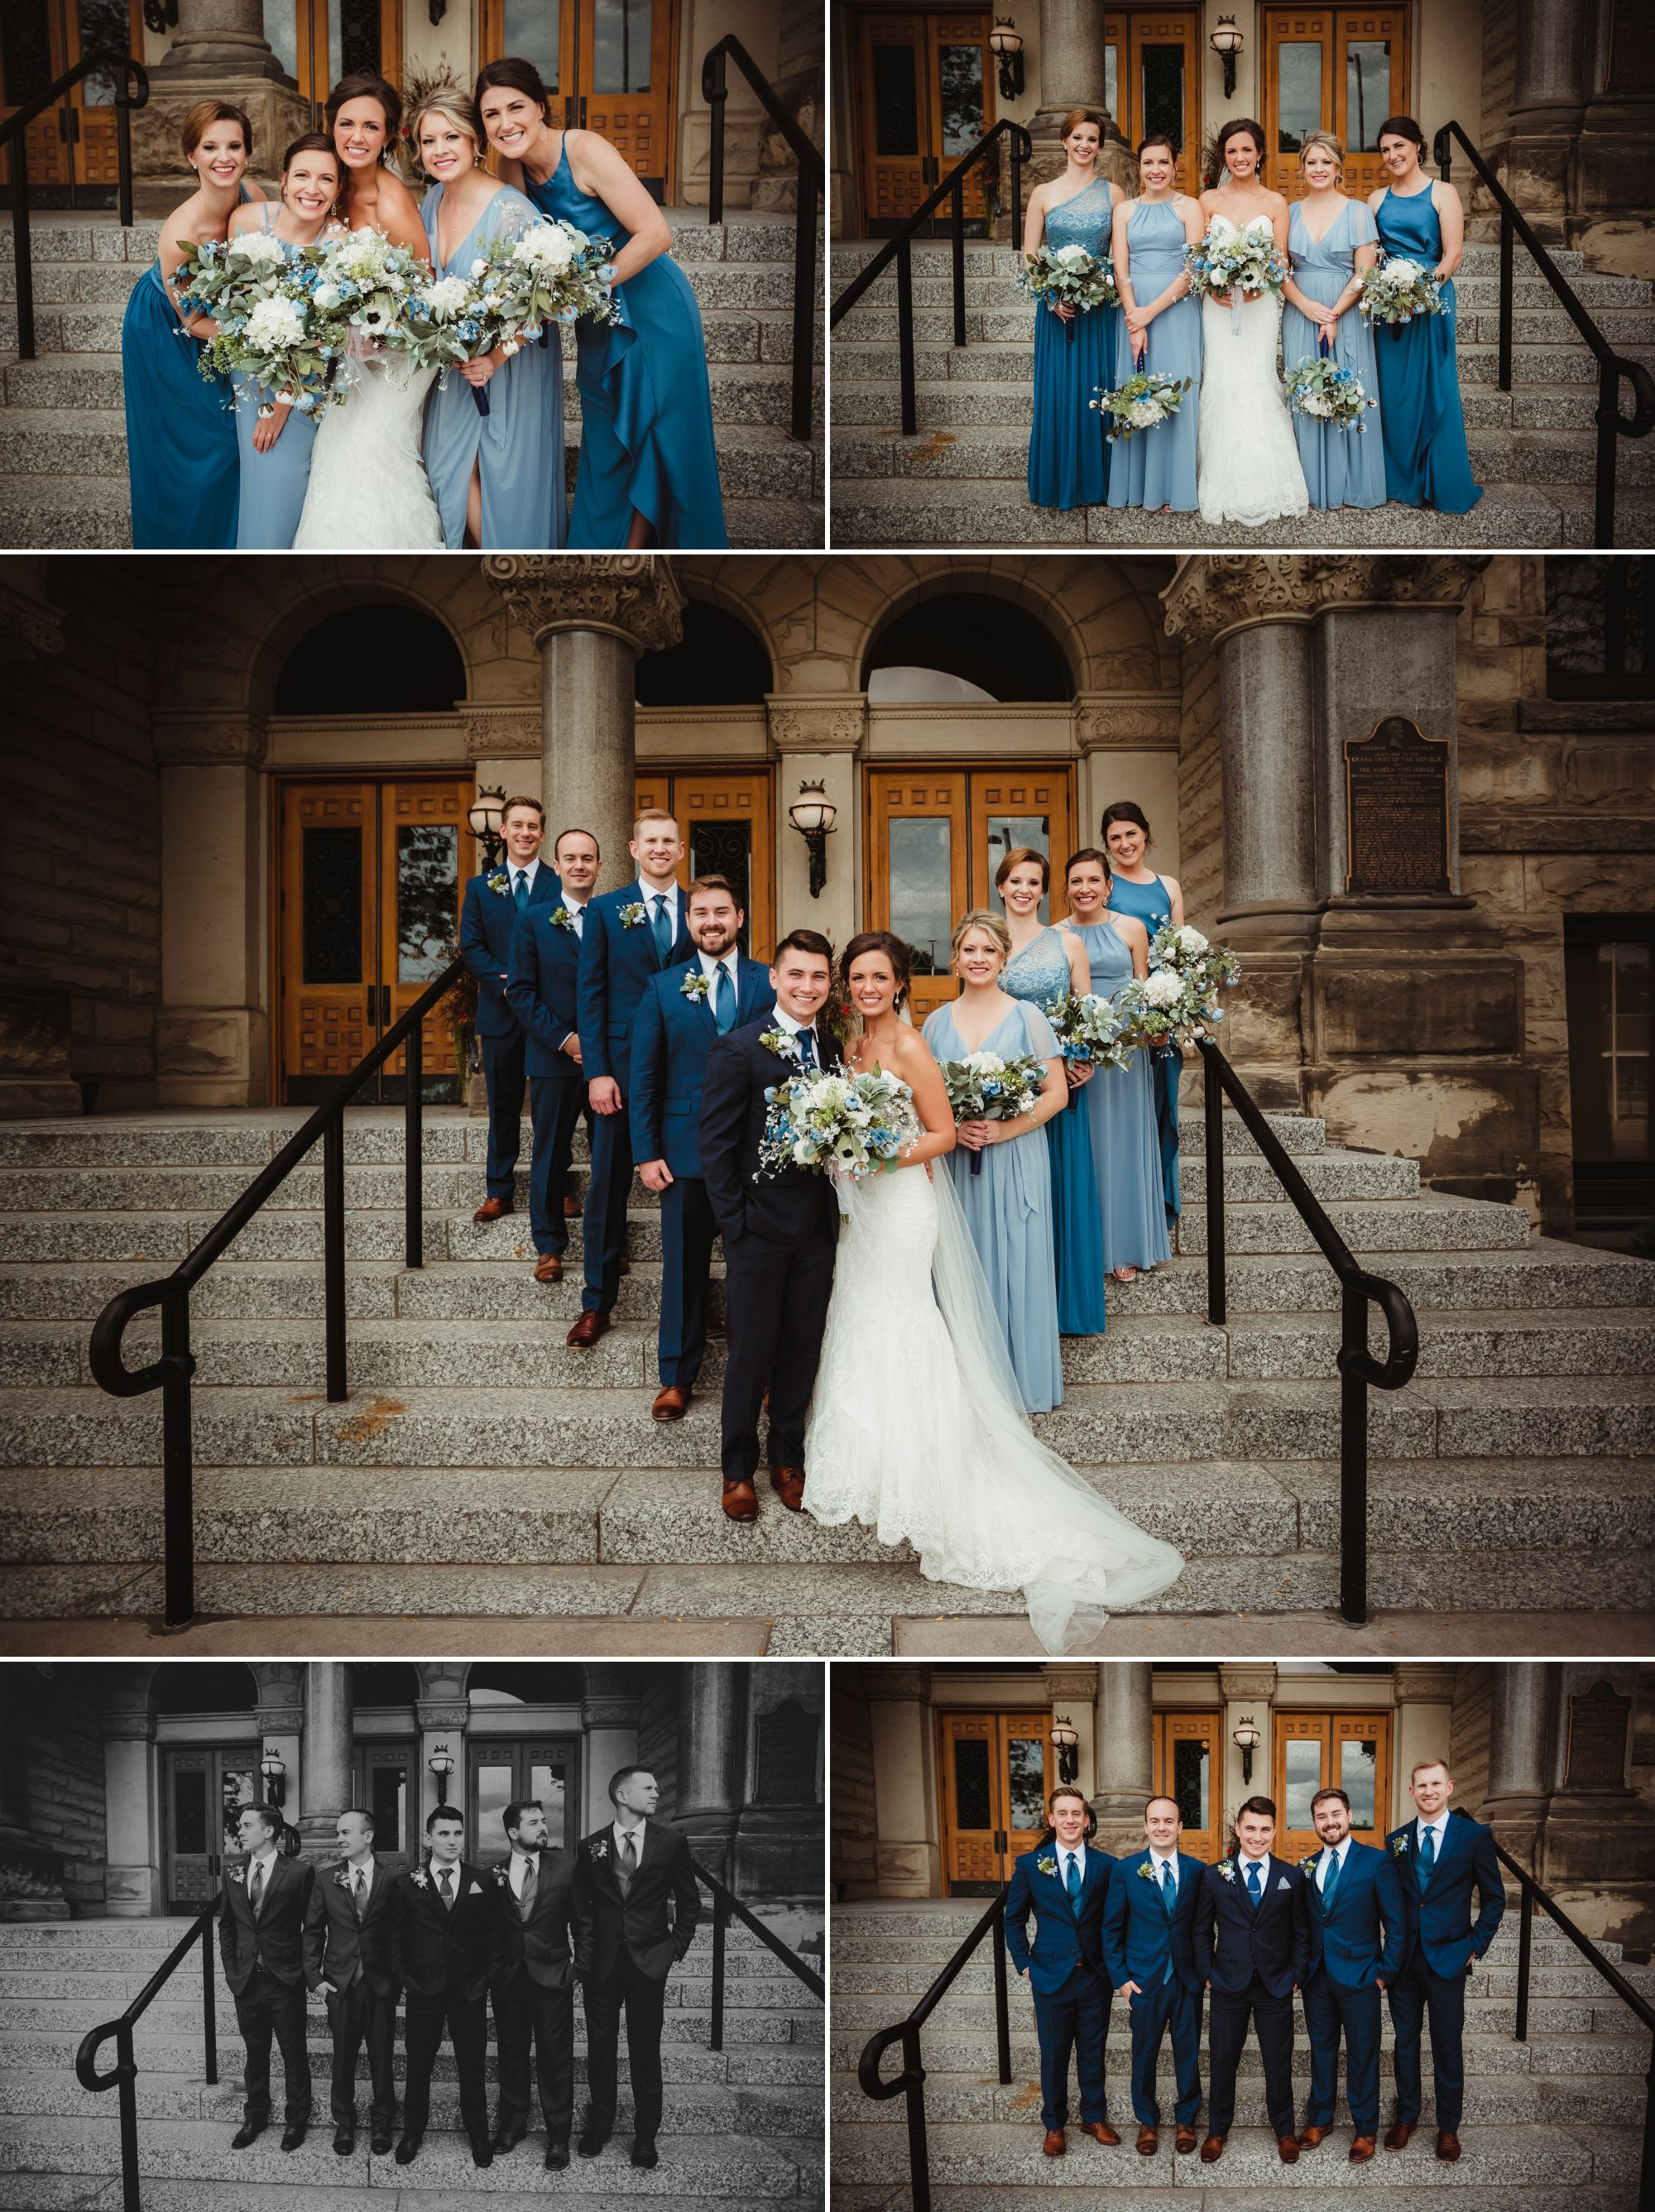 The wedding party posing on stairs. They're all in shades of blue.